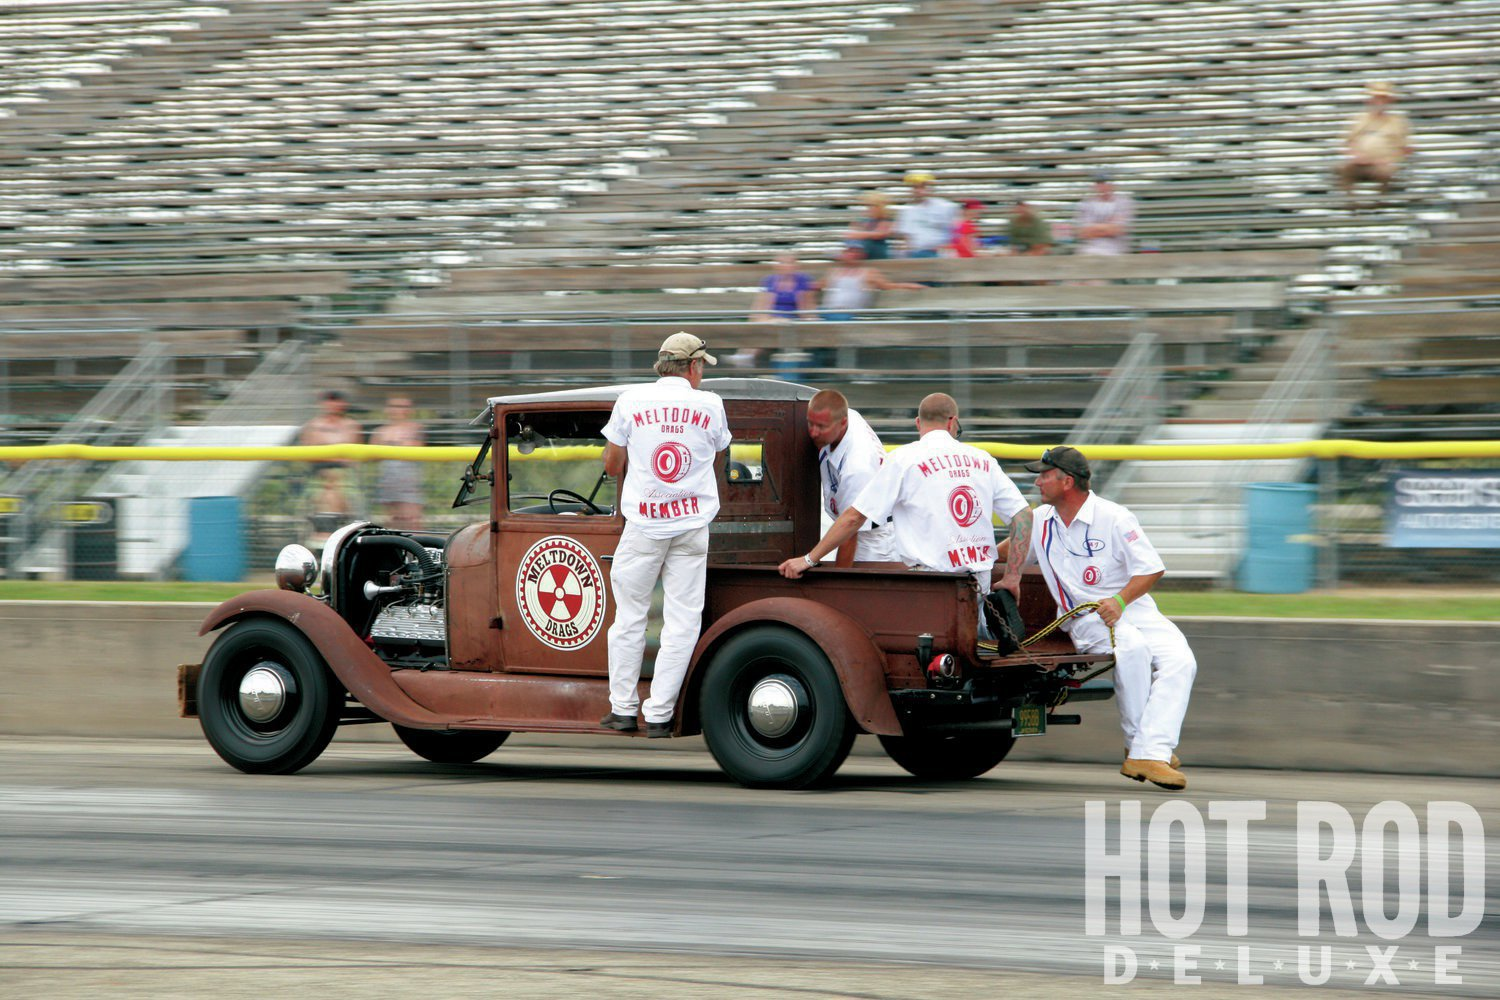 MDA members wore white at the drags to echo the pit crews of racing days past. Here, MDA VP Paul Zielsdorf wheels fellow MDA officers Smokey Moe Peterson, Steve Liberto, Tom Bucek, and Art Zangerle on the way to tow the Koopmeiners & Sons '55s.